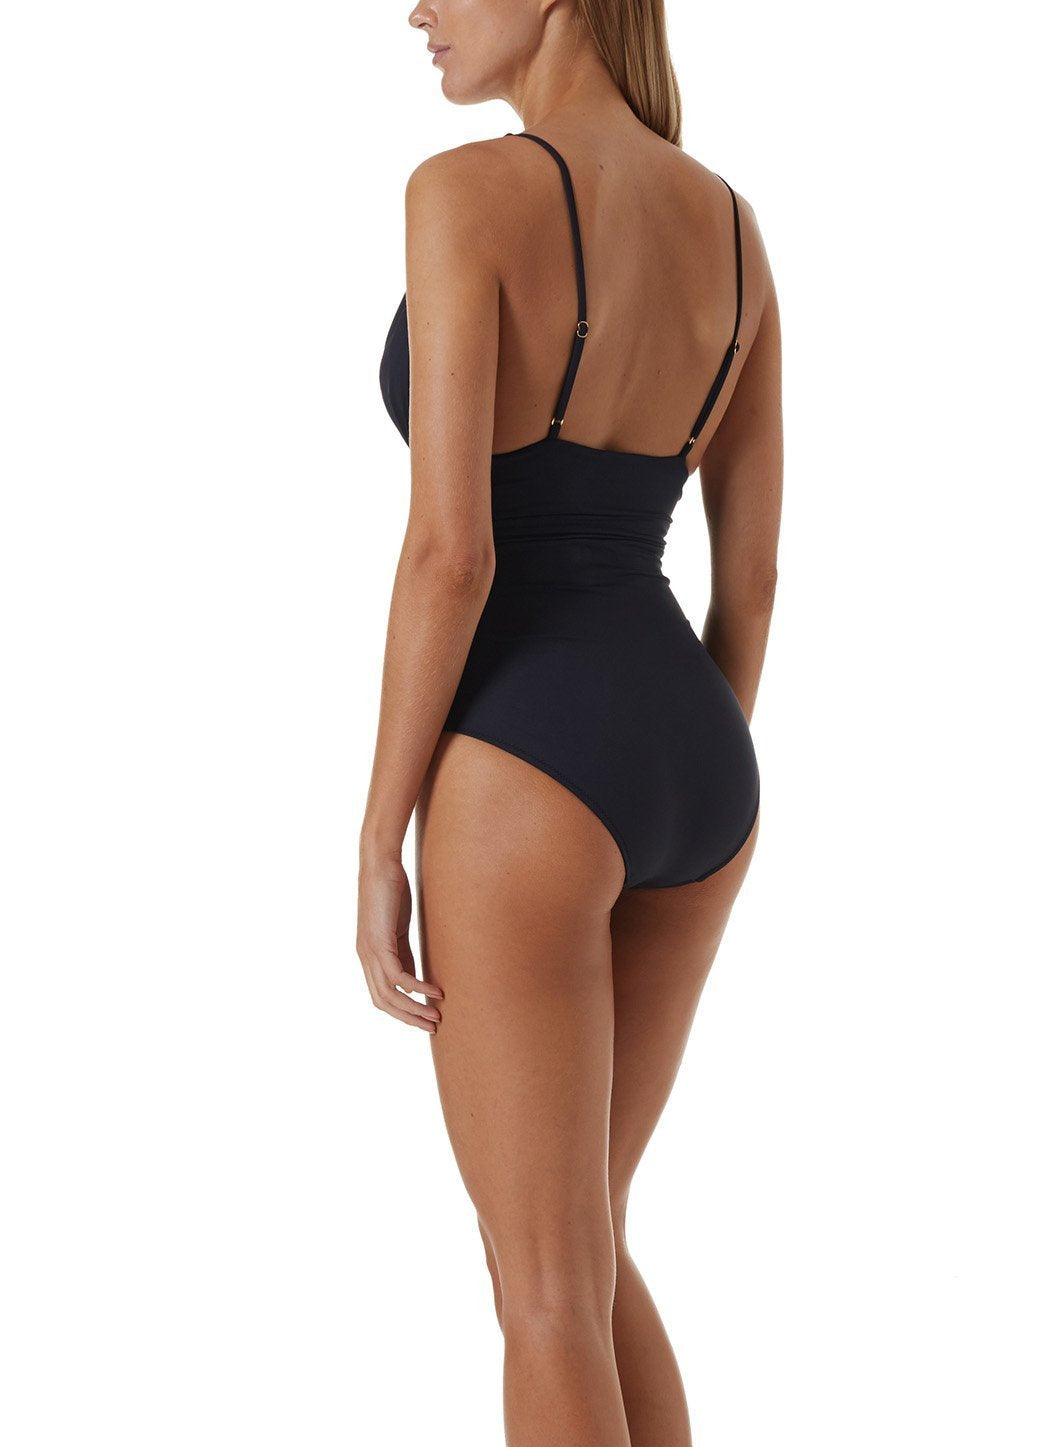 panarea black swimsuit